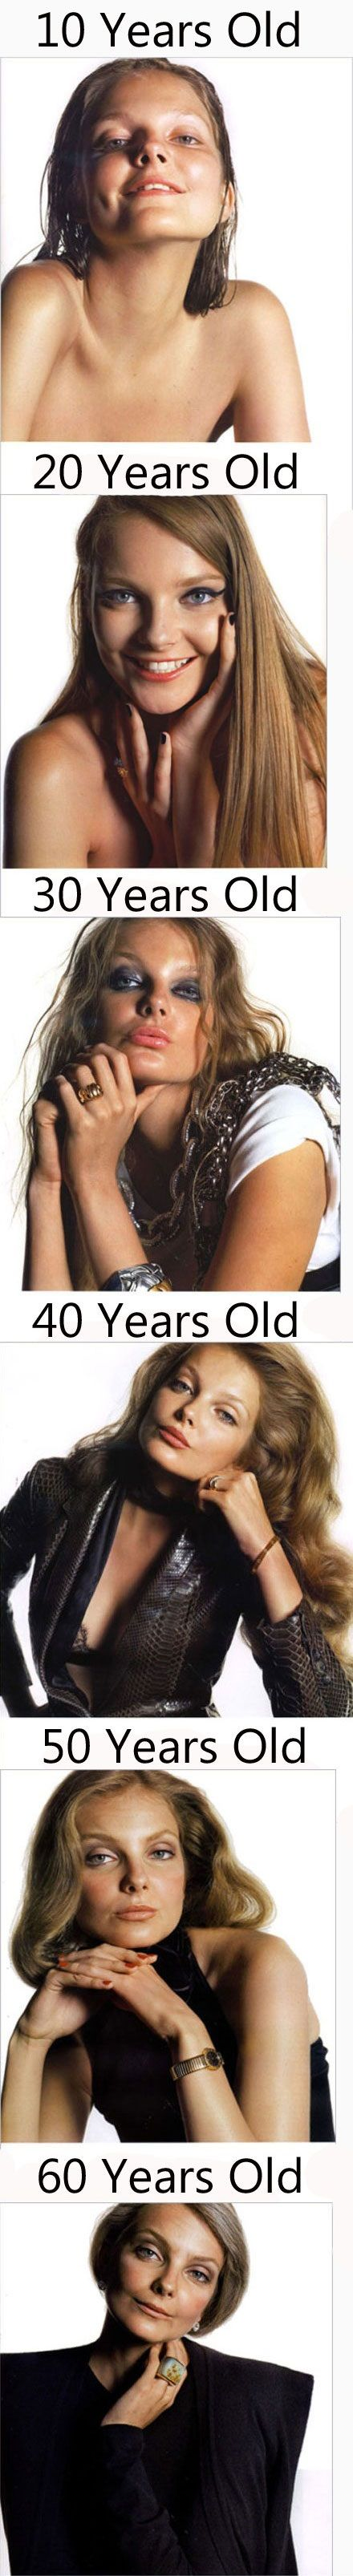 How to distinguish a 30-year-old girl from a 40-year-old